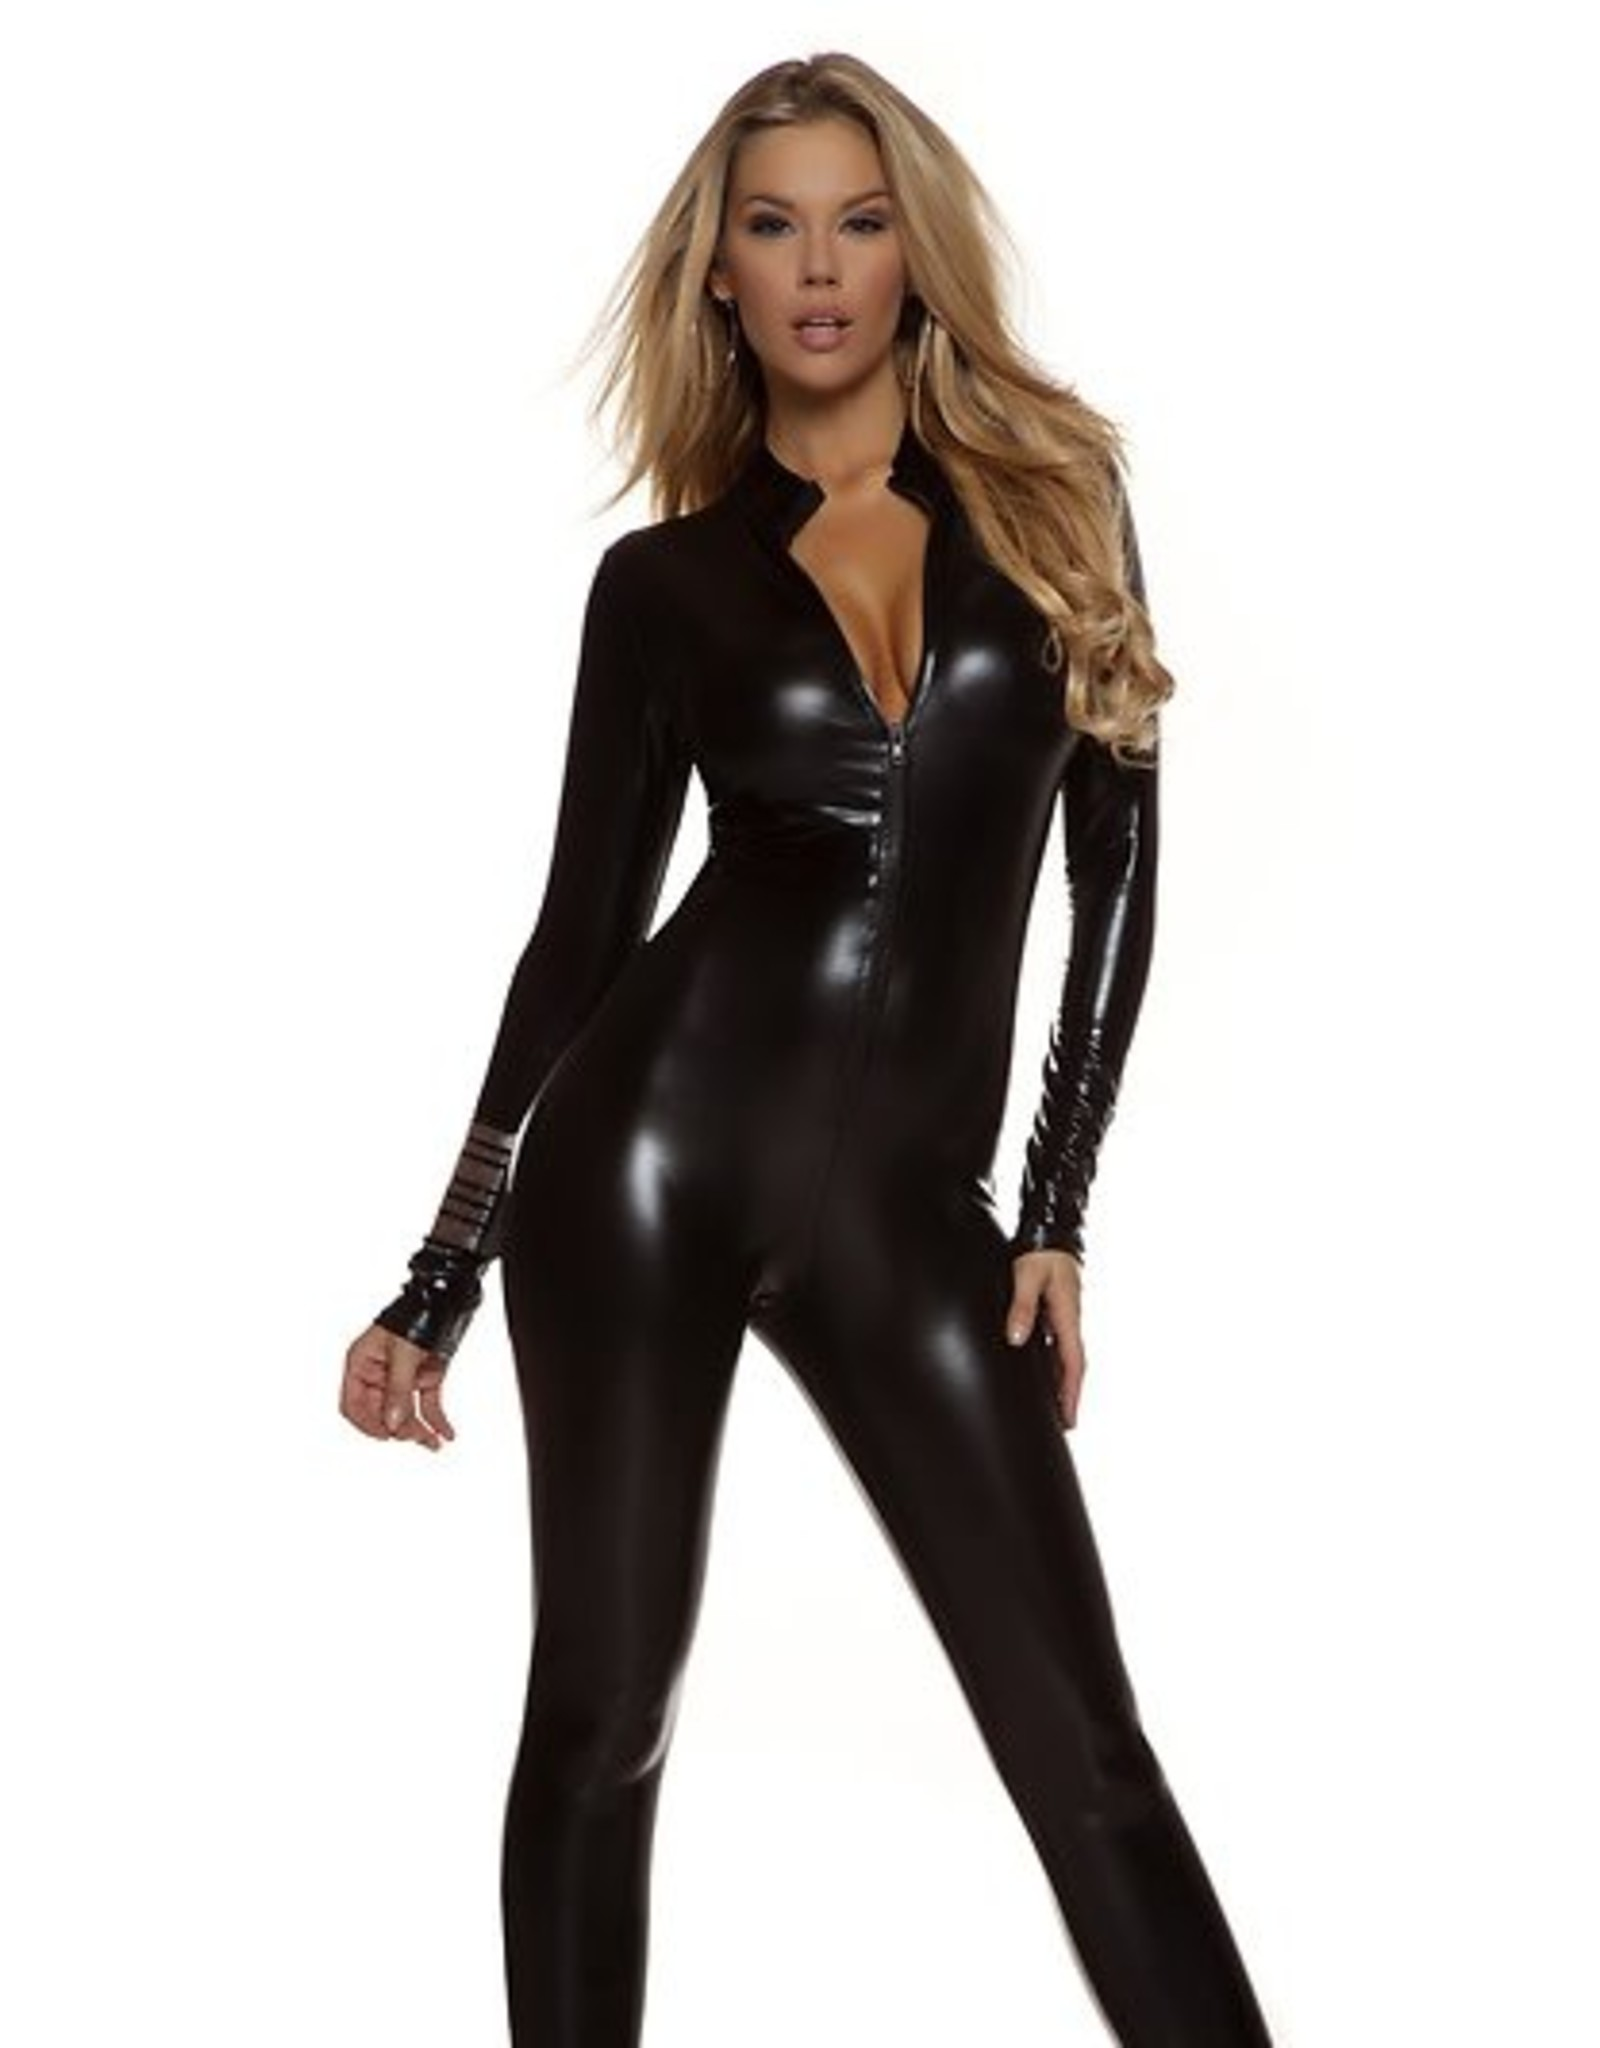 Forplay Metallic Catsuit Black